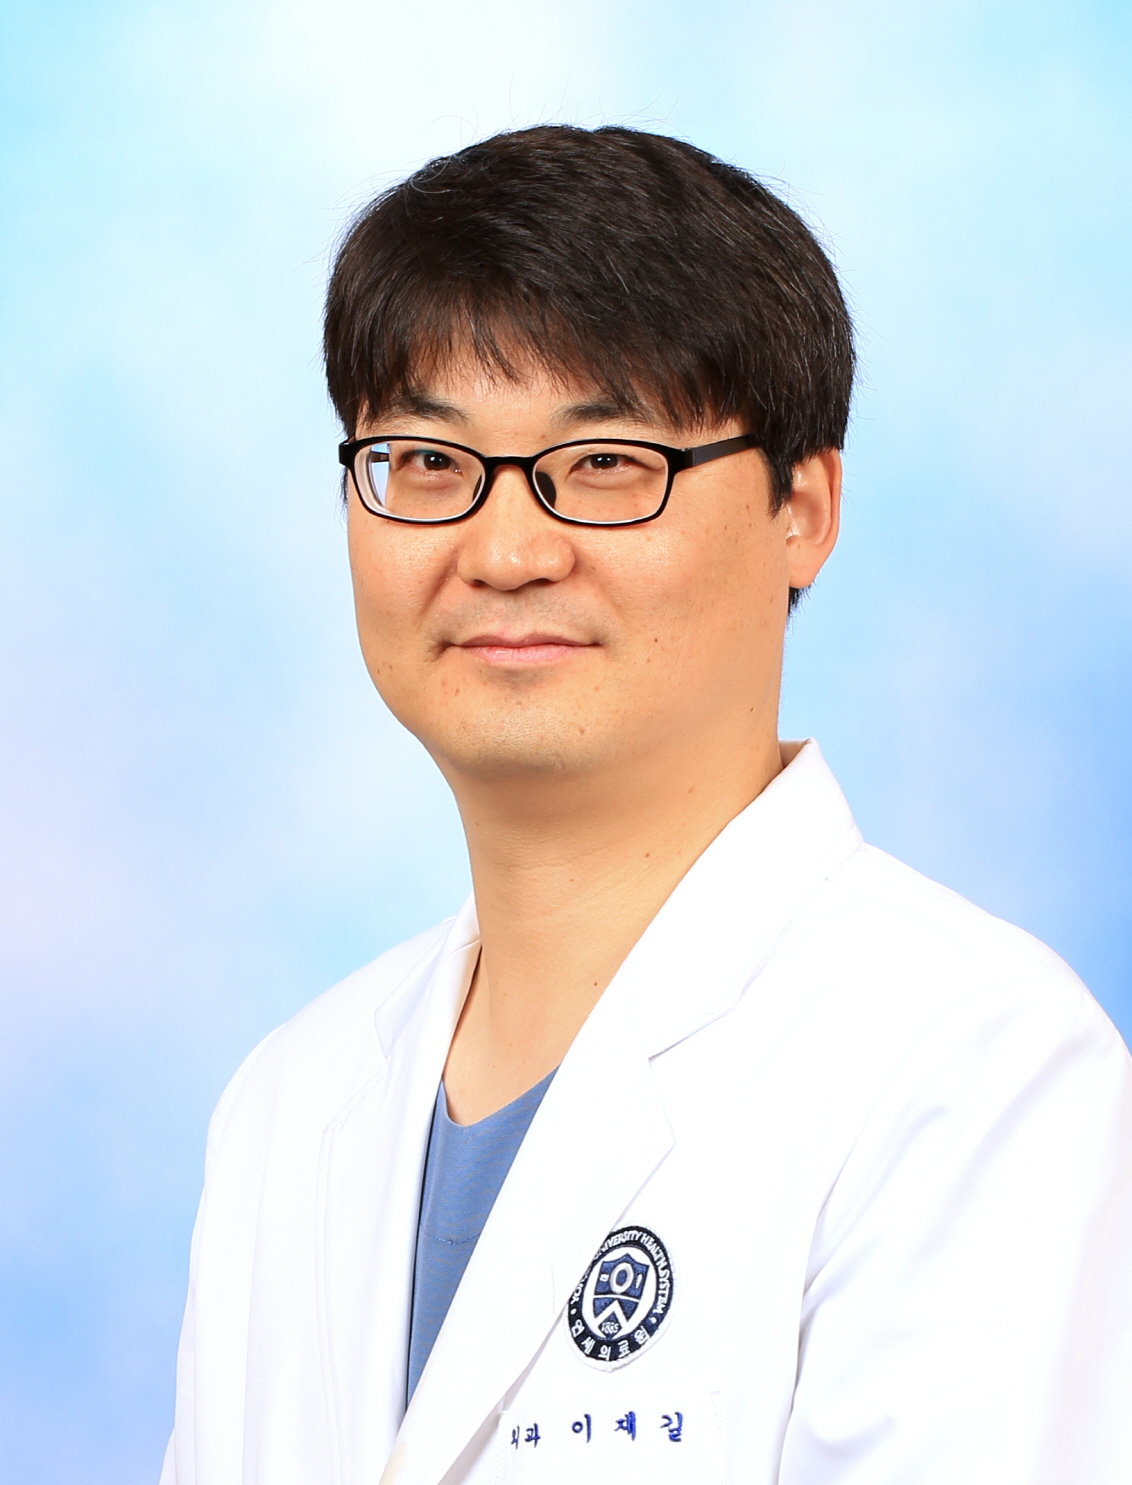 Photo of JaeGil Lee